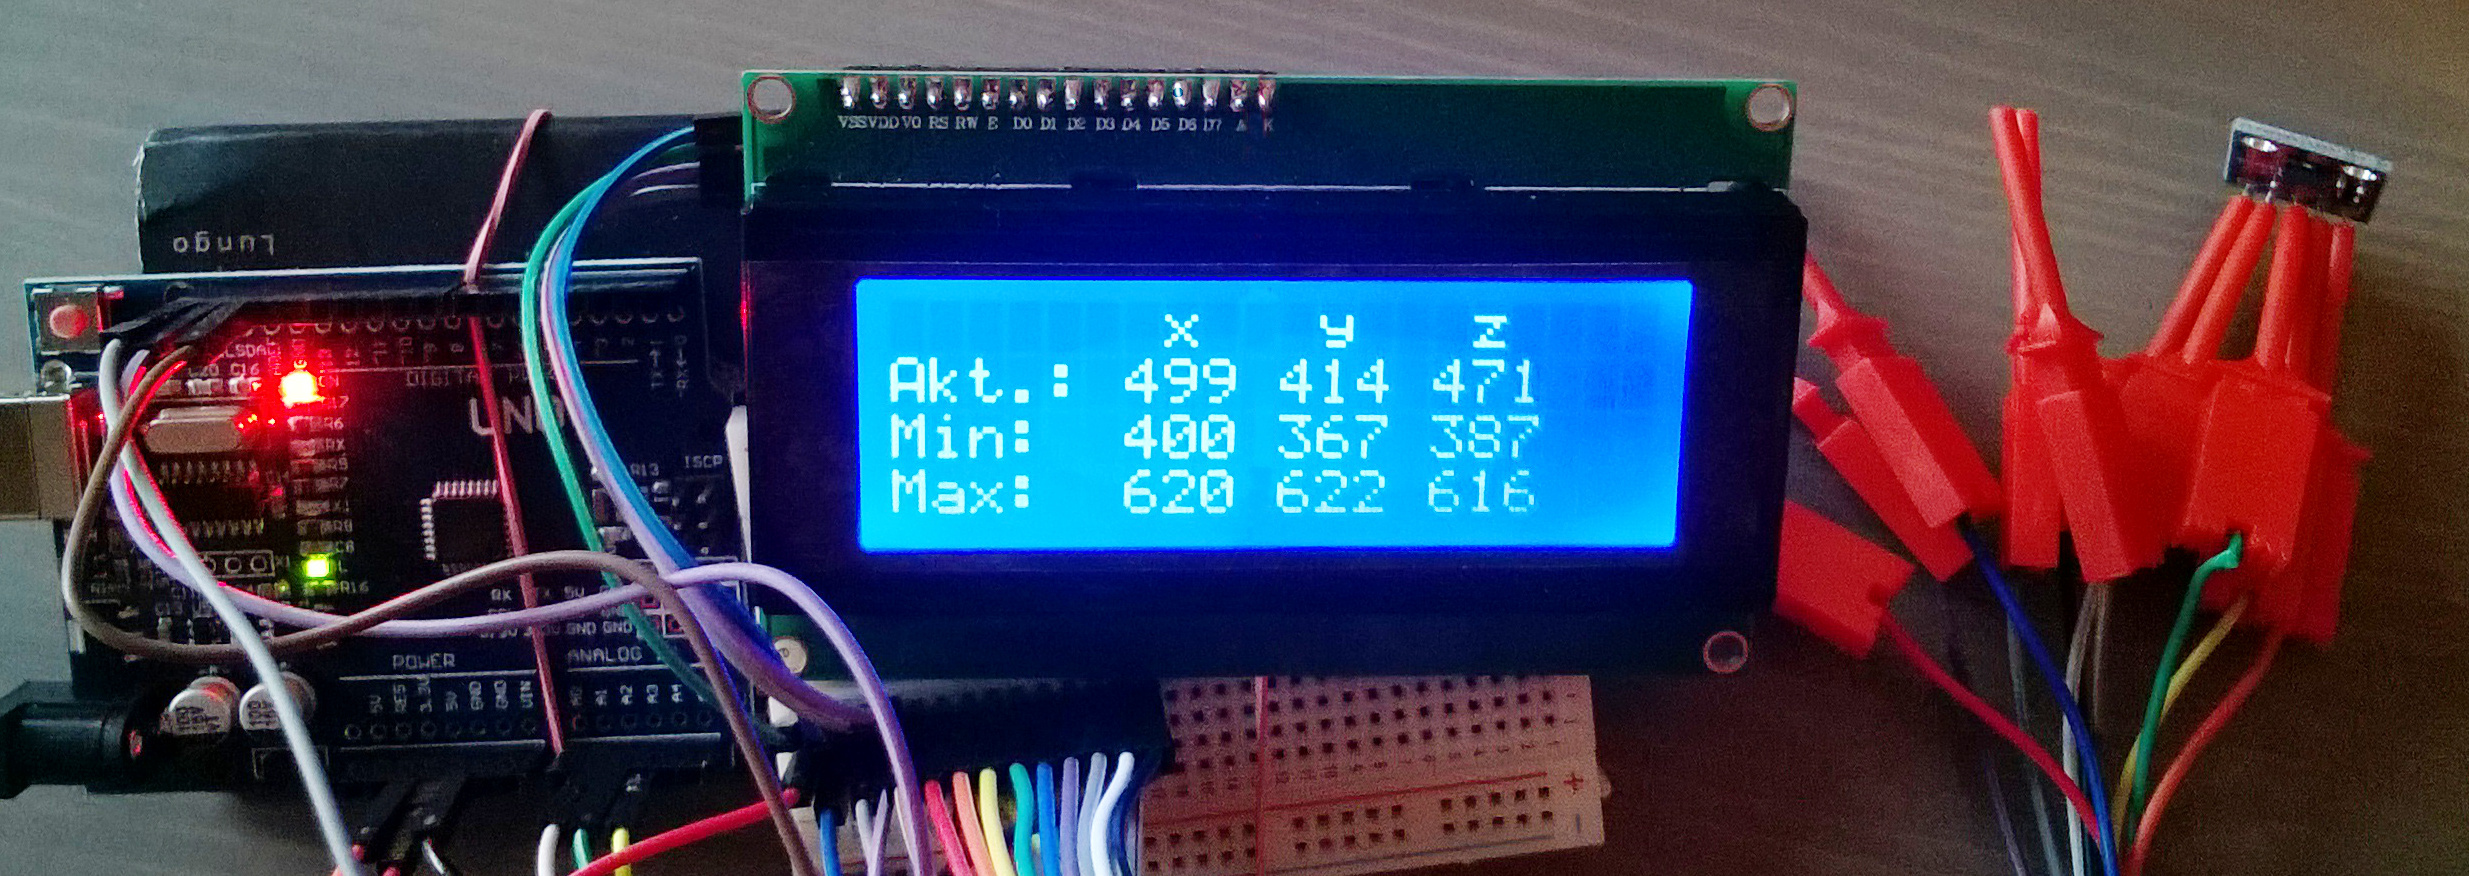 ADXL335 I2C 2004 LCD – Easy Arduino